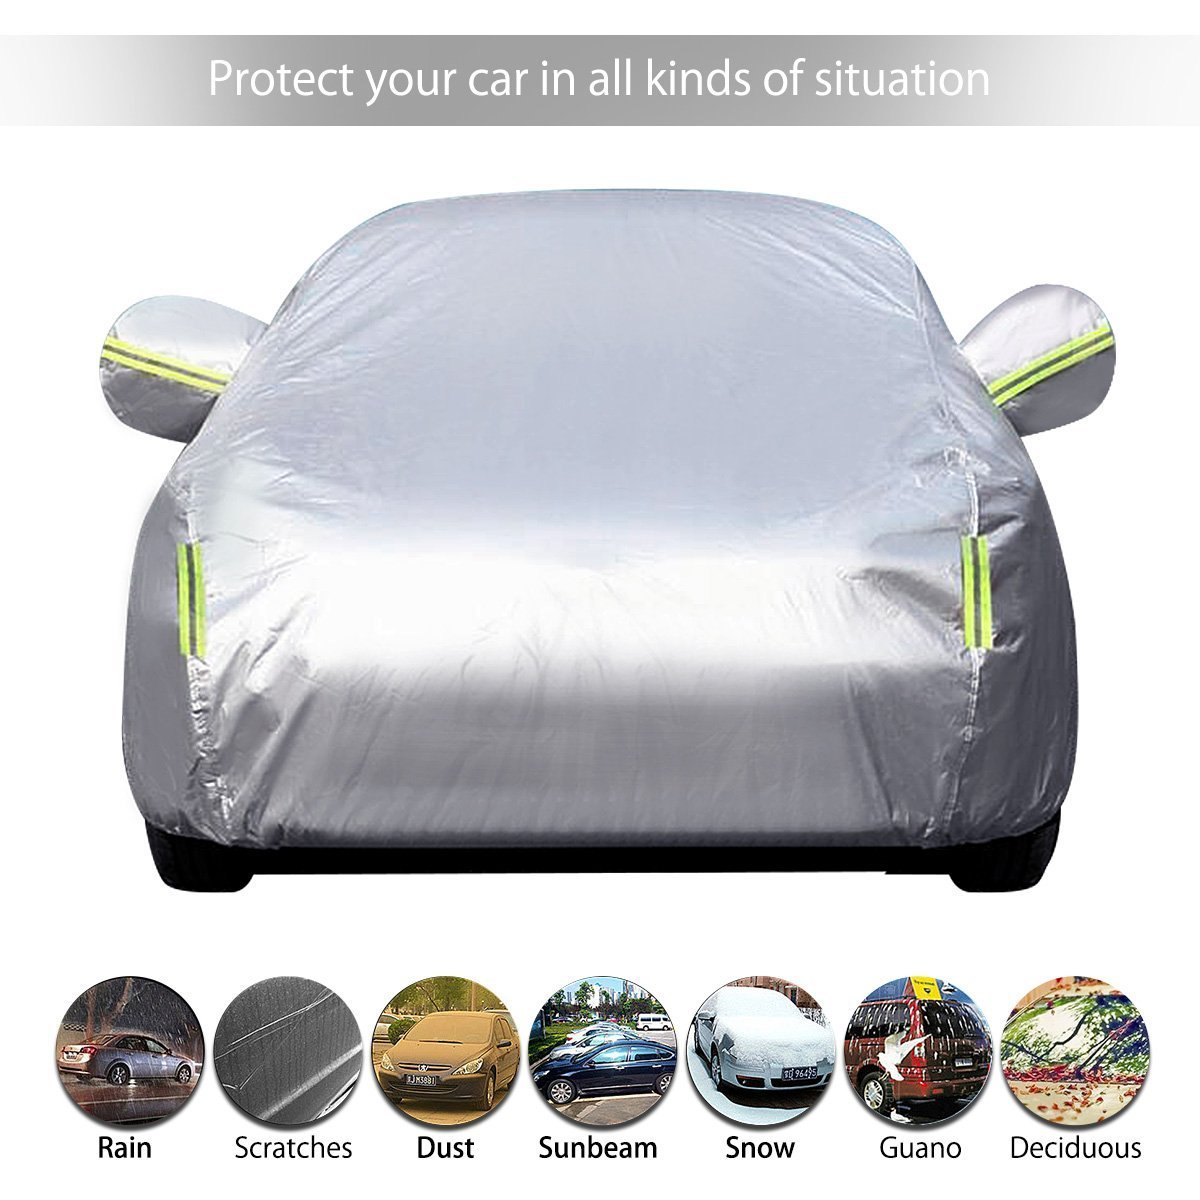 197Lx75Wx59H MATCC Car Cover Waterproof Snowproof and UV Proof Outdoor or Indoor Breathable Auto Cover for Full Car Fits Sedan Protect from Moisture Corrosion Dust Dirt Scrapes